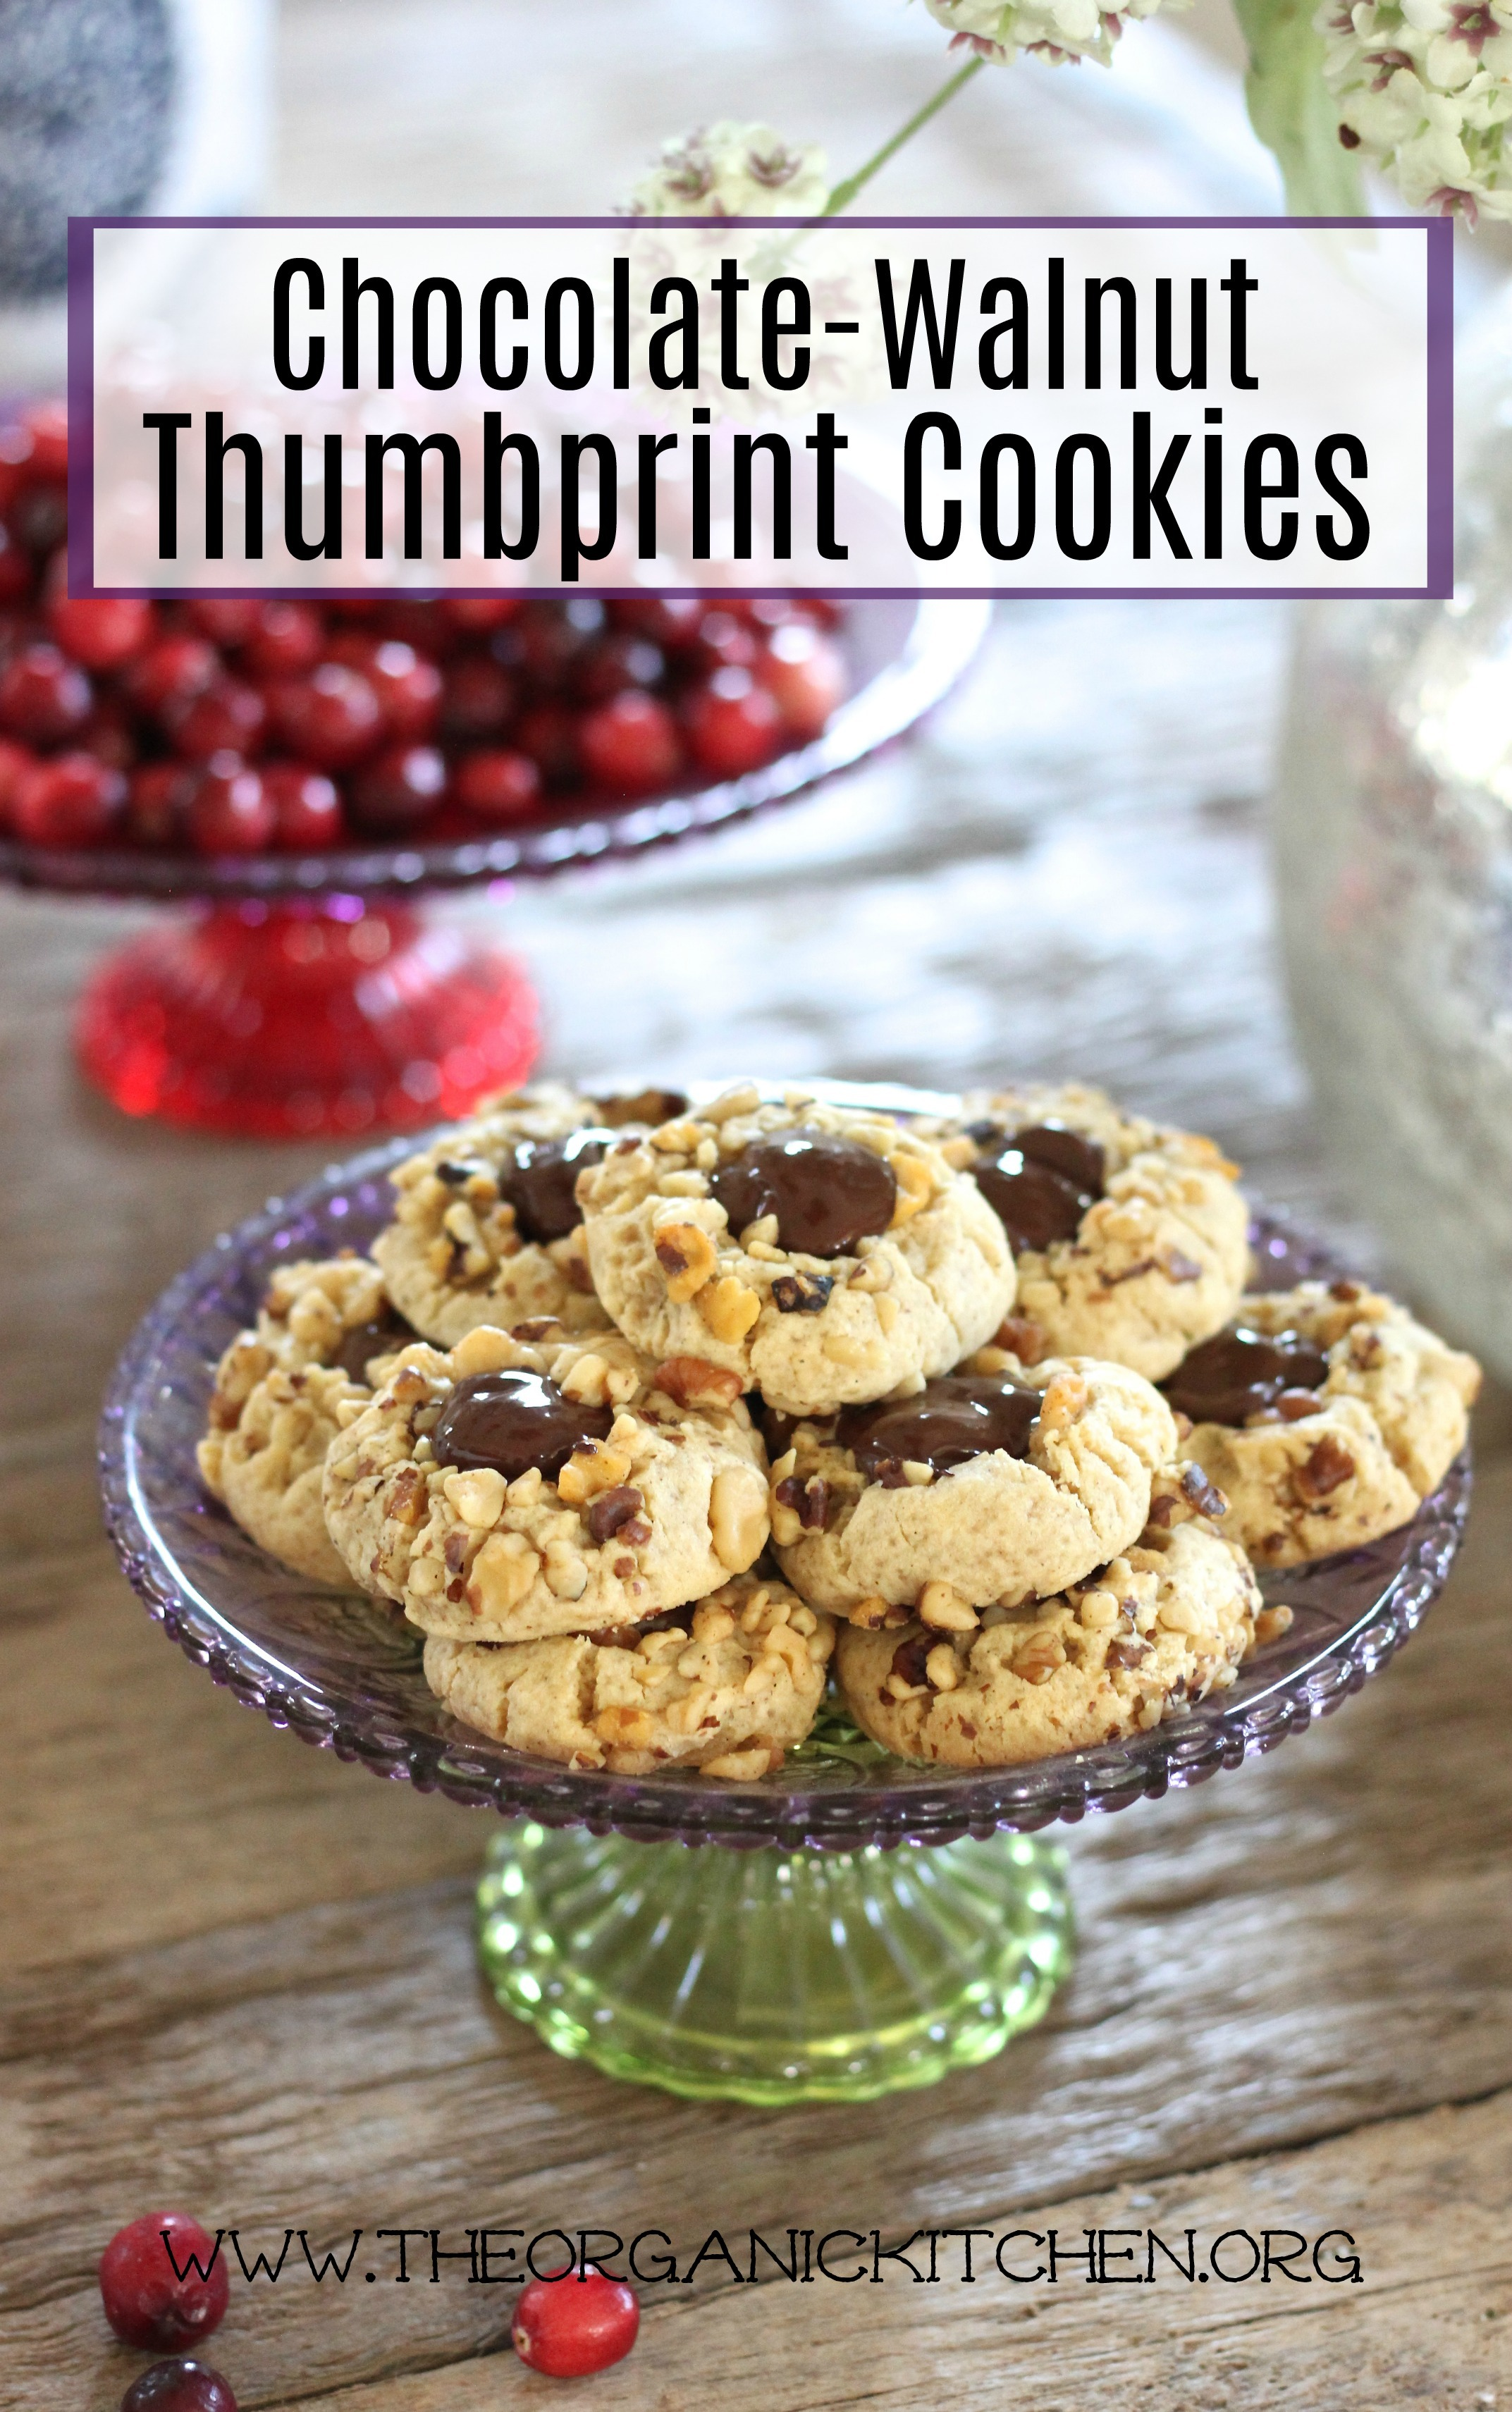 Chocolate Walnut Thumbprint Cookies - with Gluten free and grain free versions